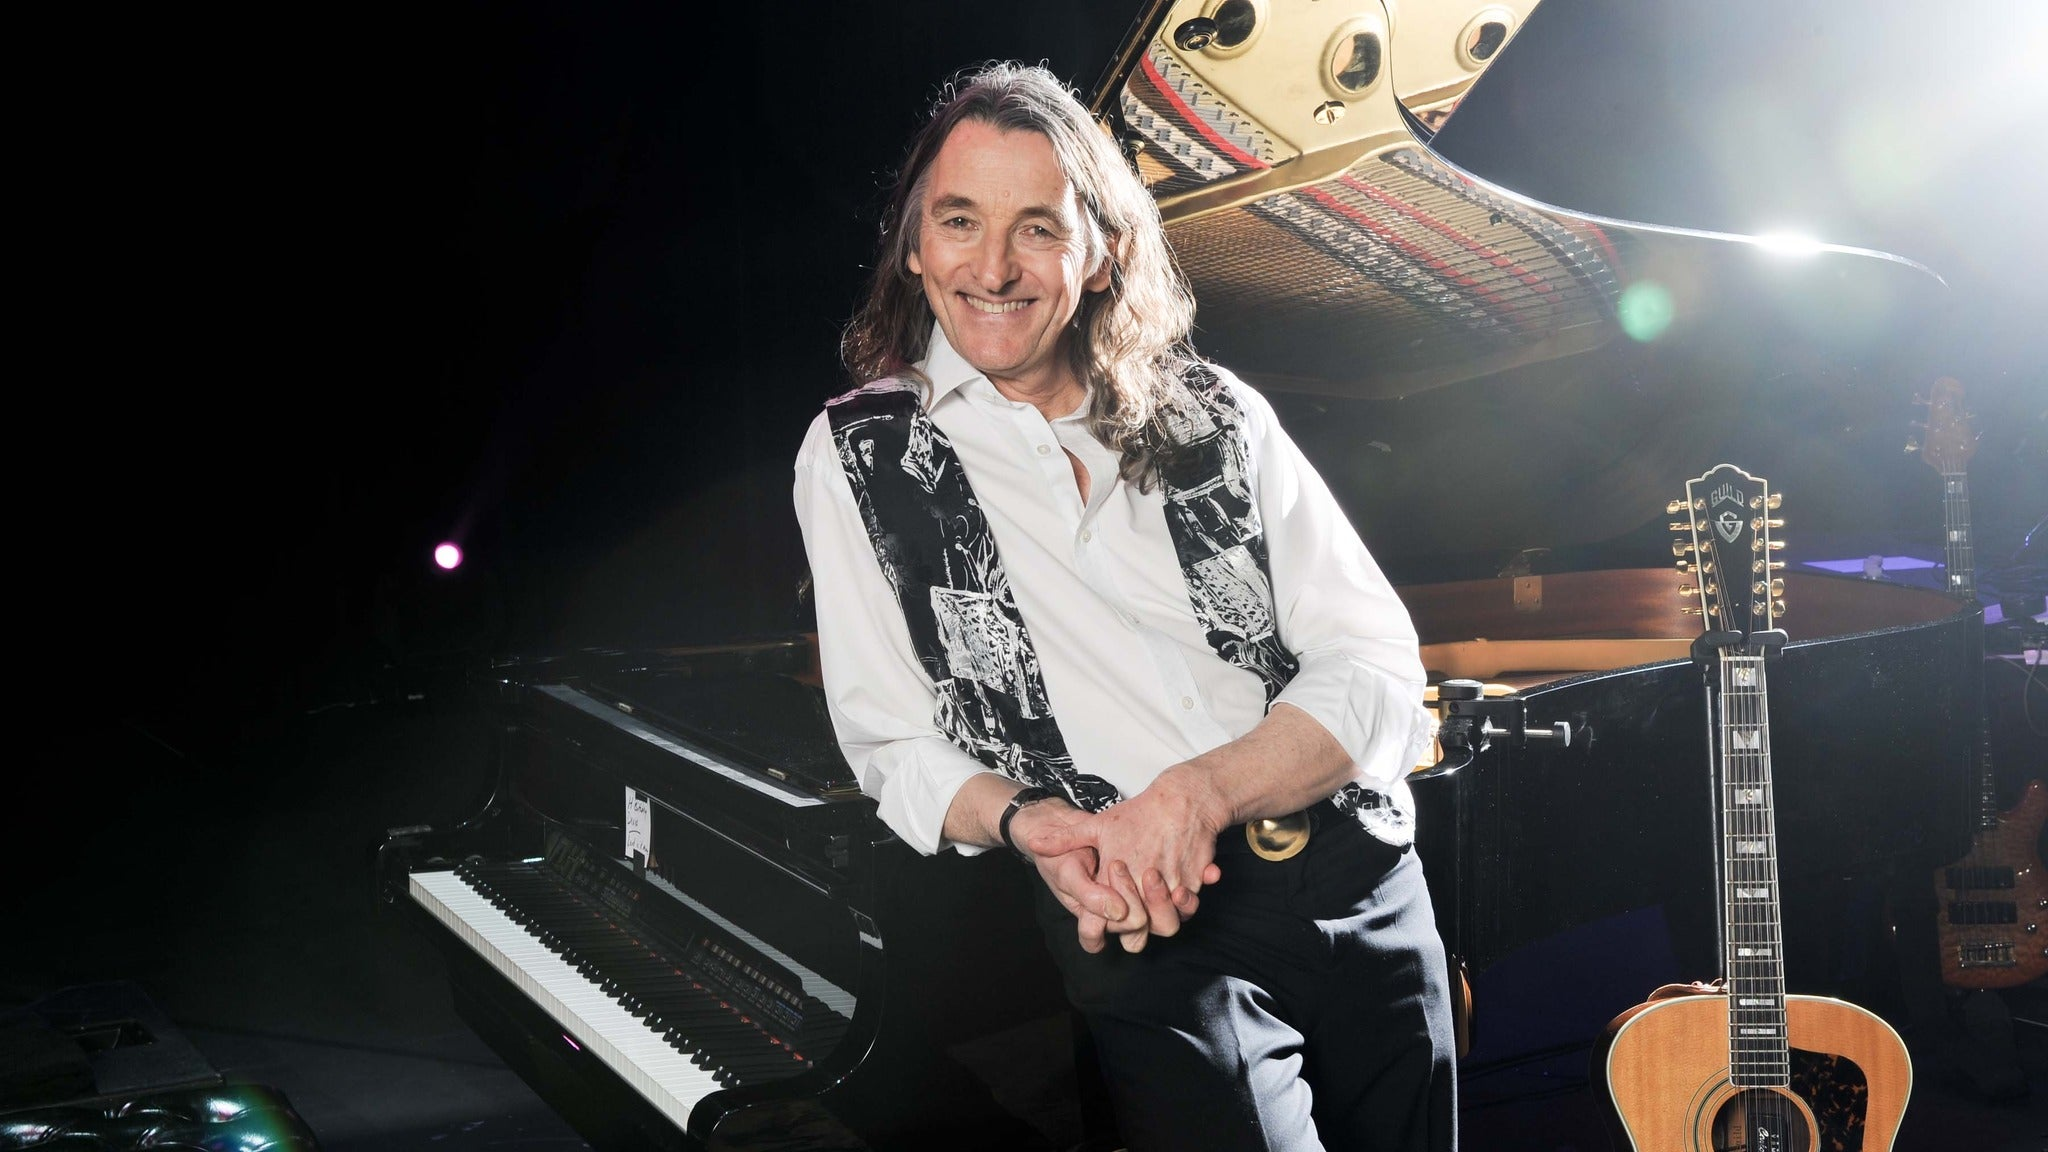 SUPERTRAMP'S ROGER HODGSON at Humphreys Concerts By the Bay